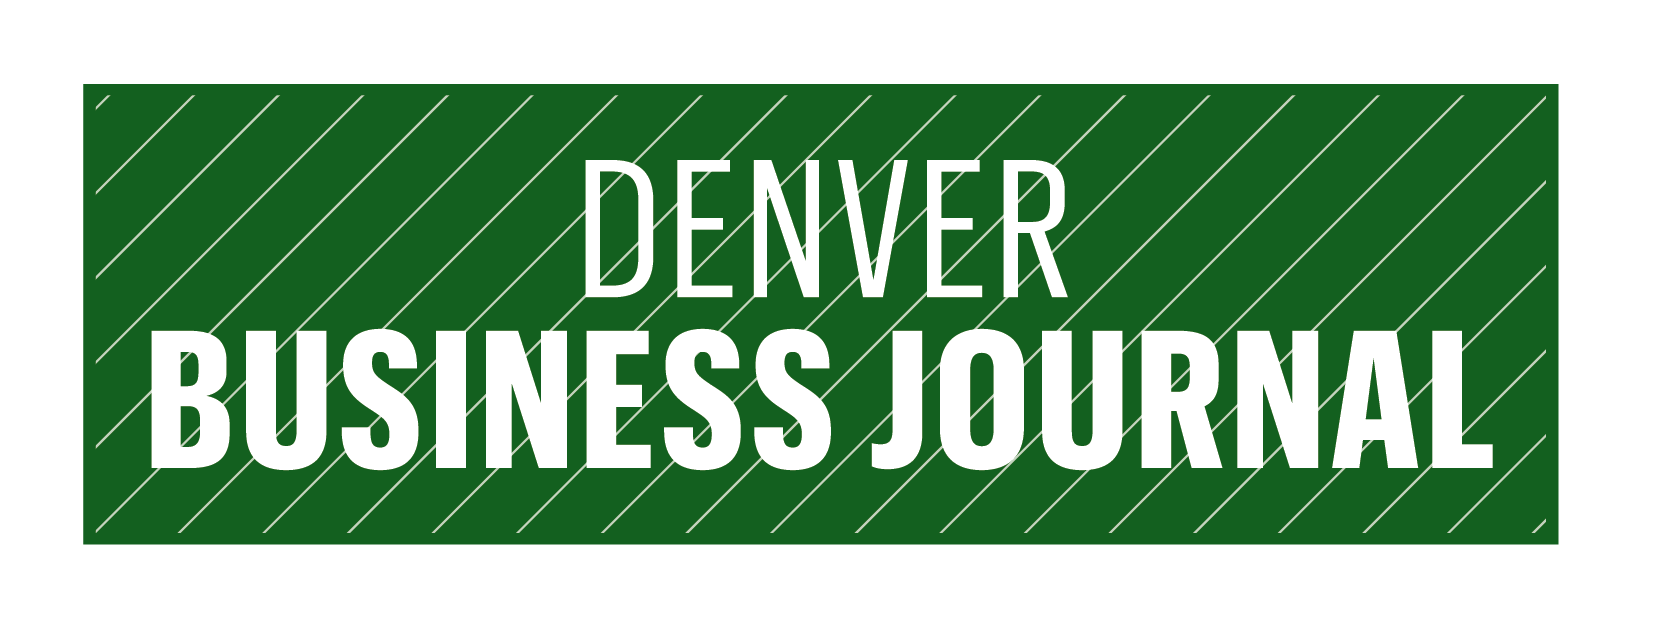 denver_business_journal_logo